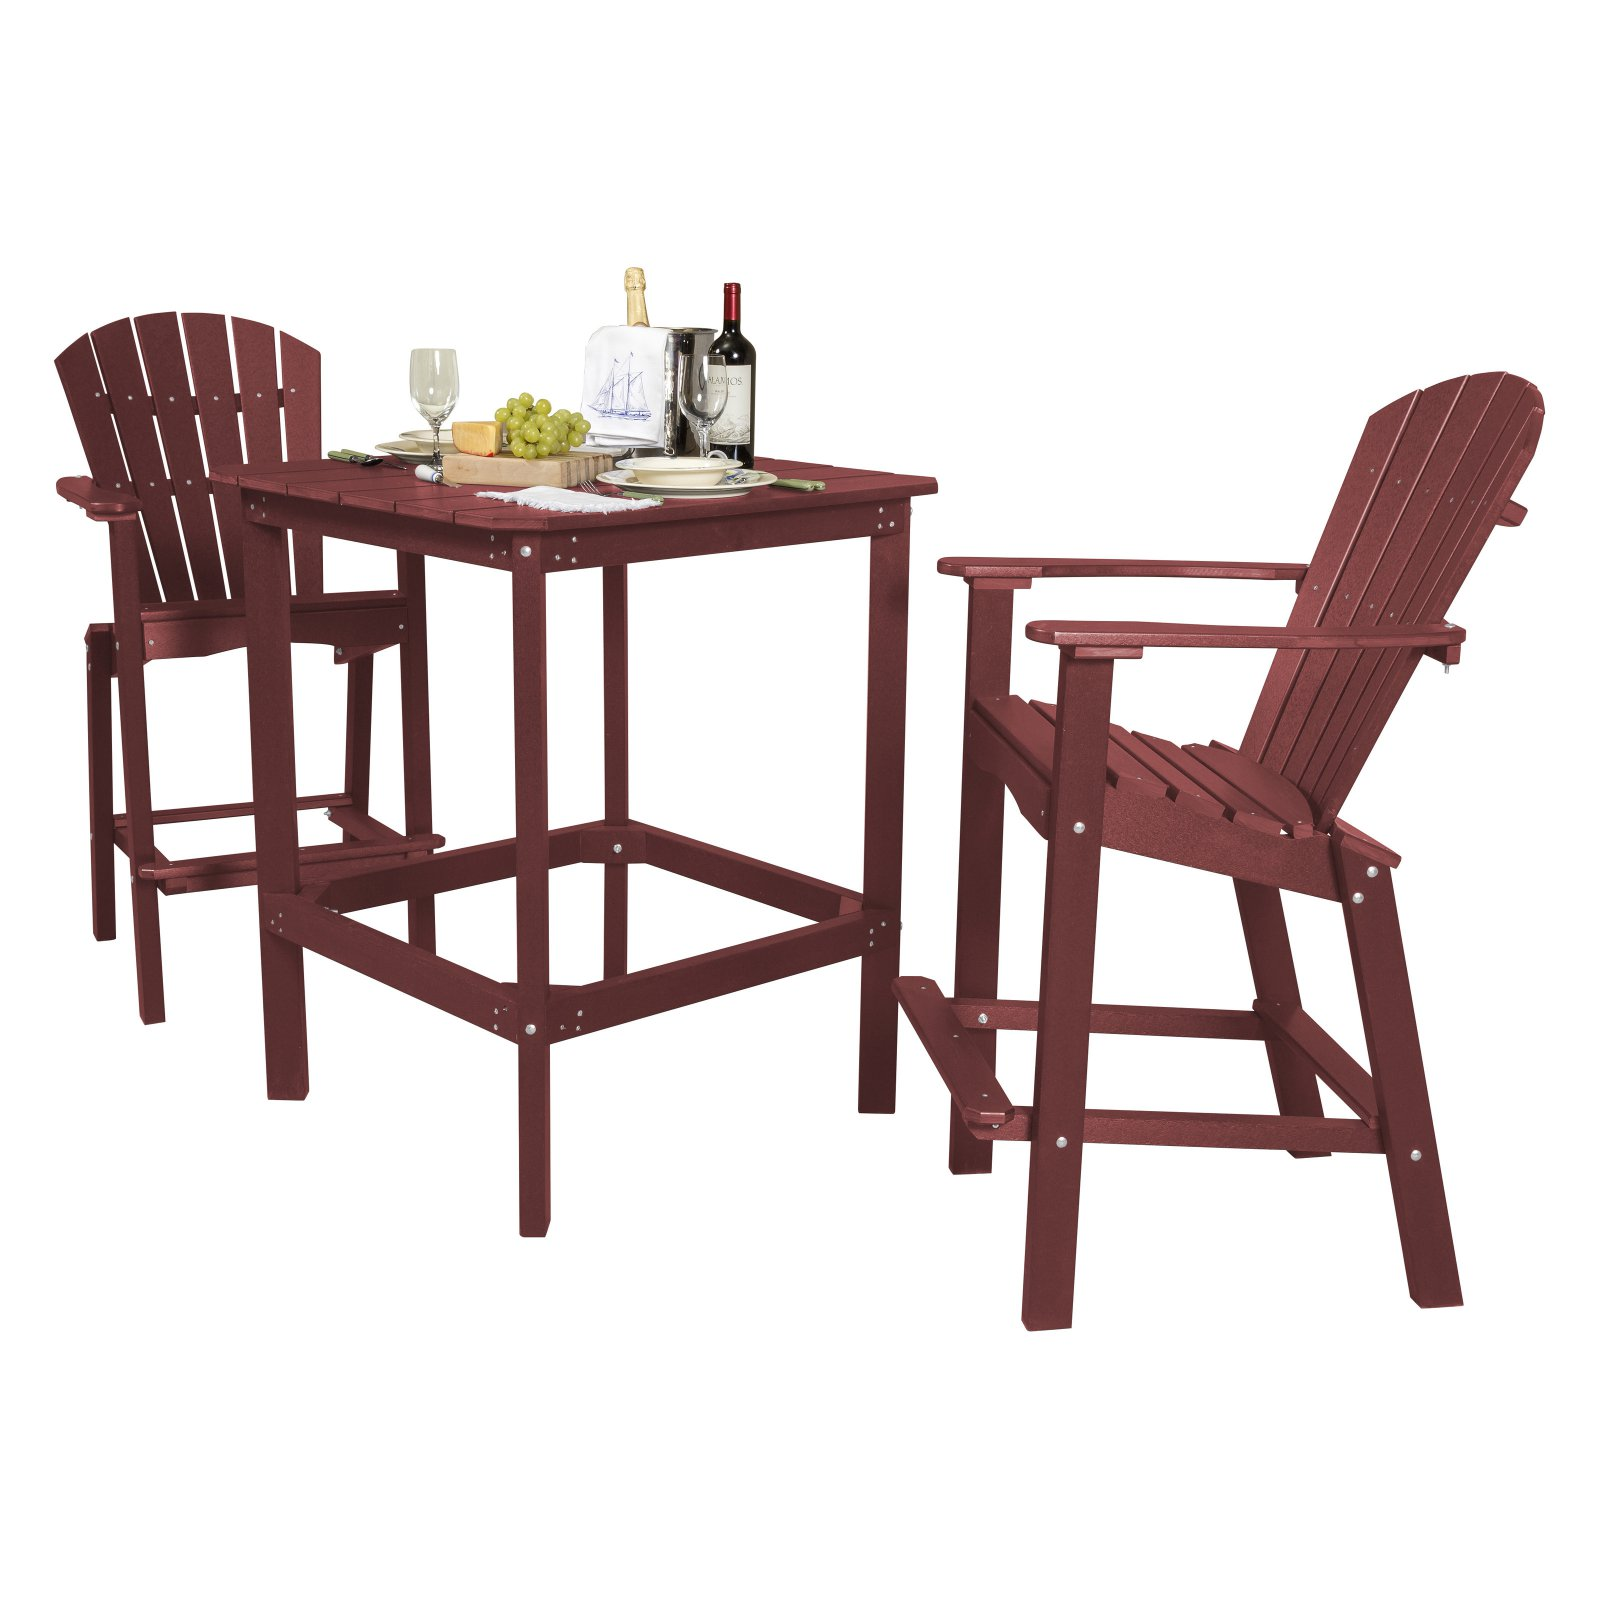 Little Cottage Classic Recycled Plastic 3 Piece Square Bar Height Patio Dining Set